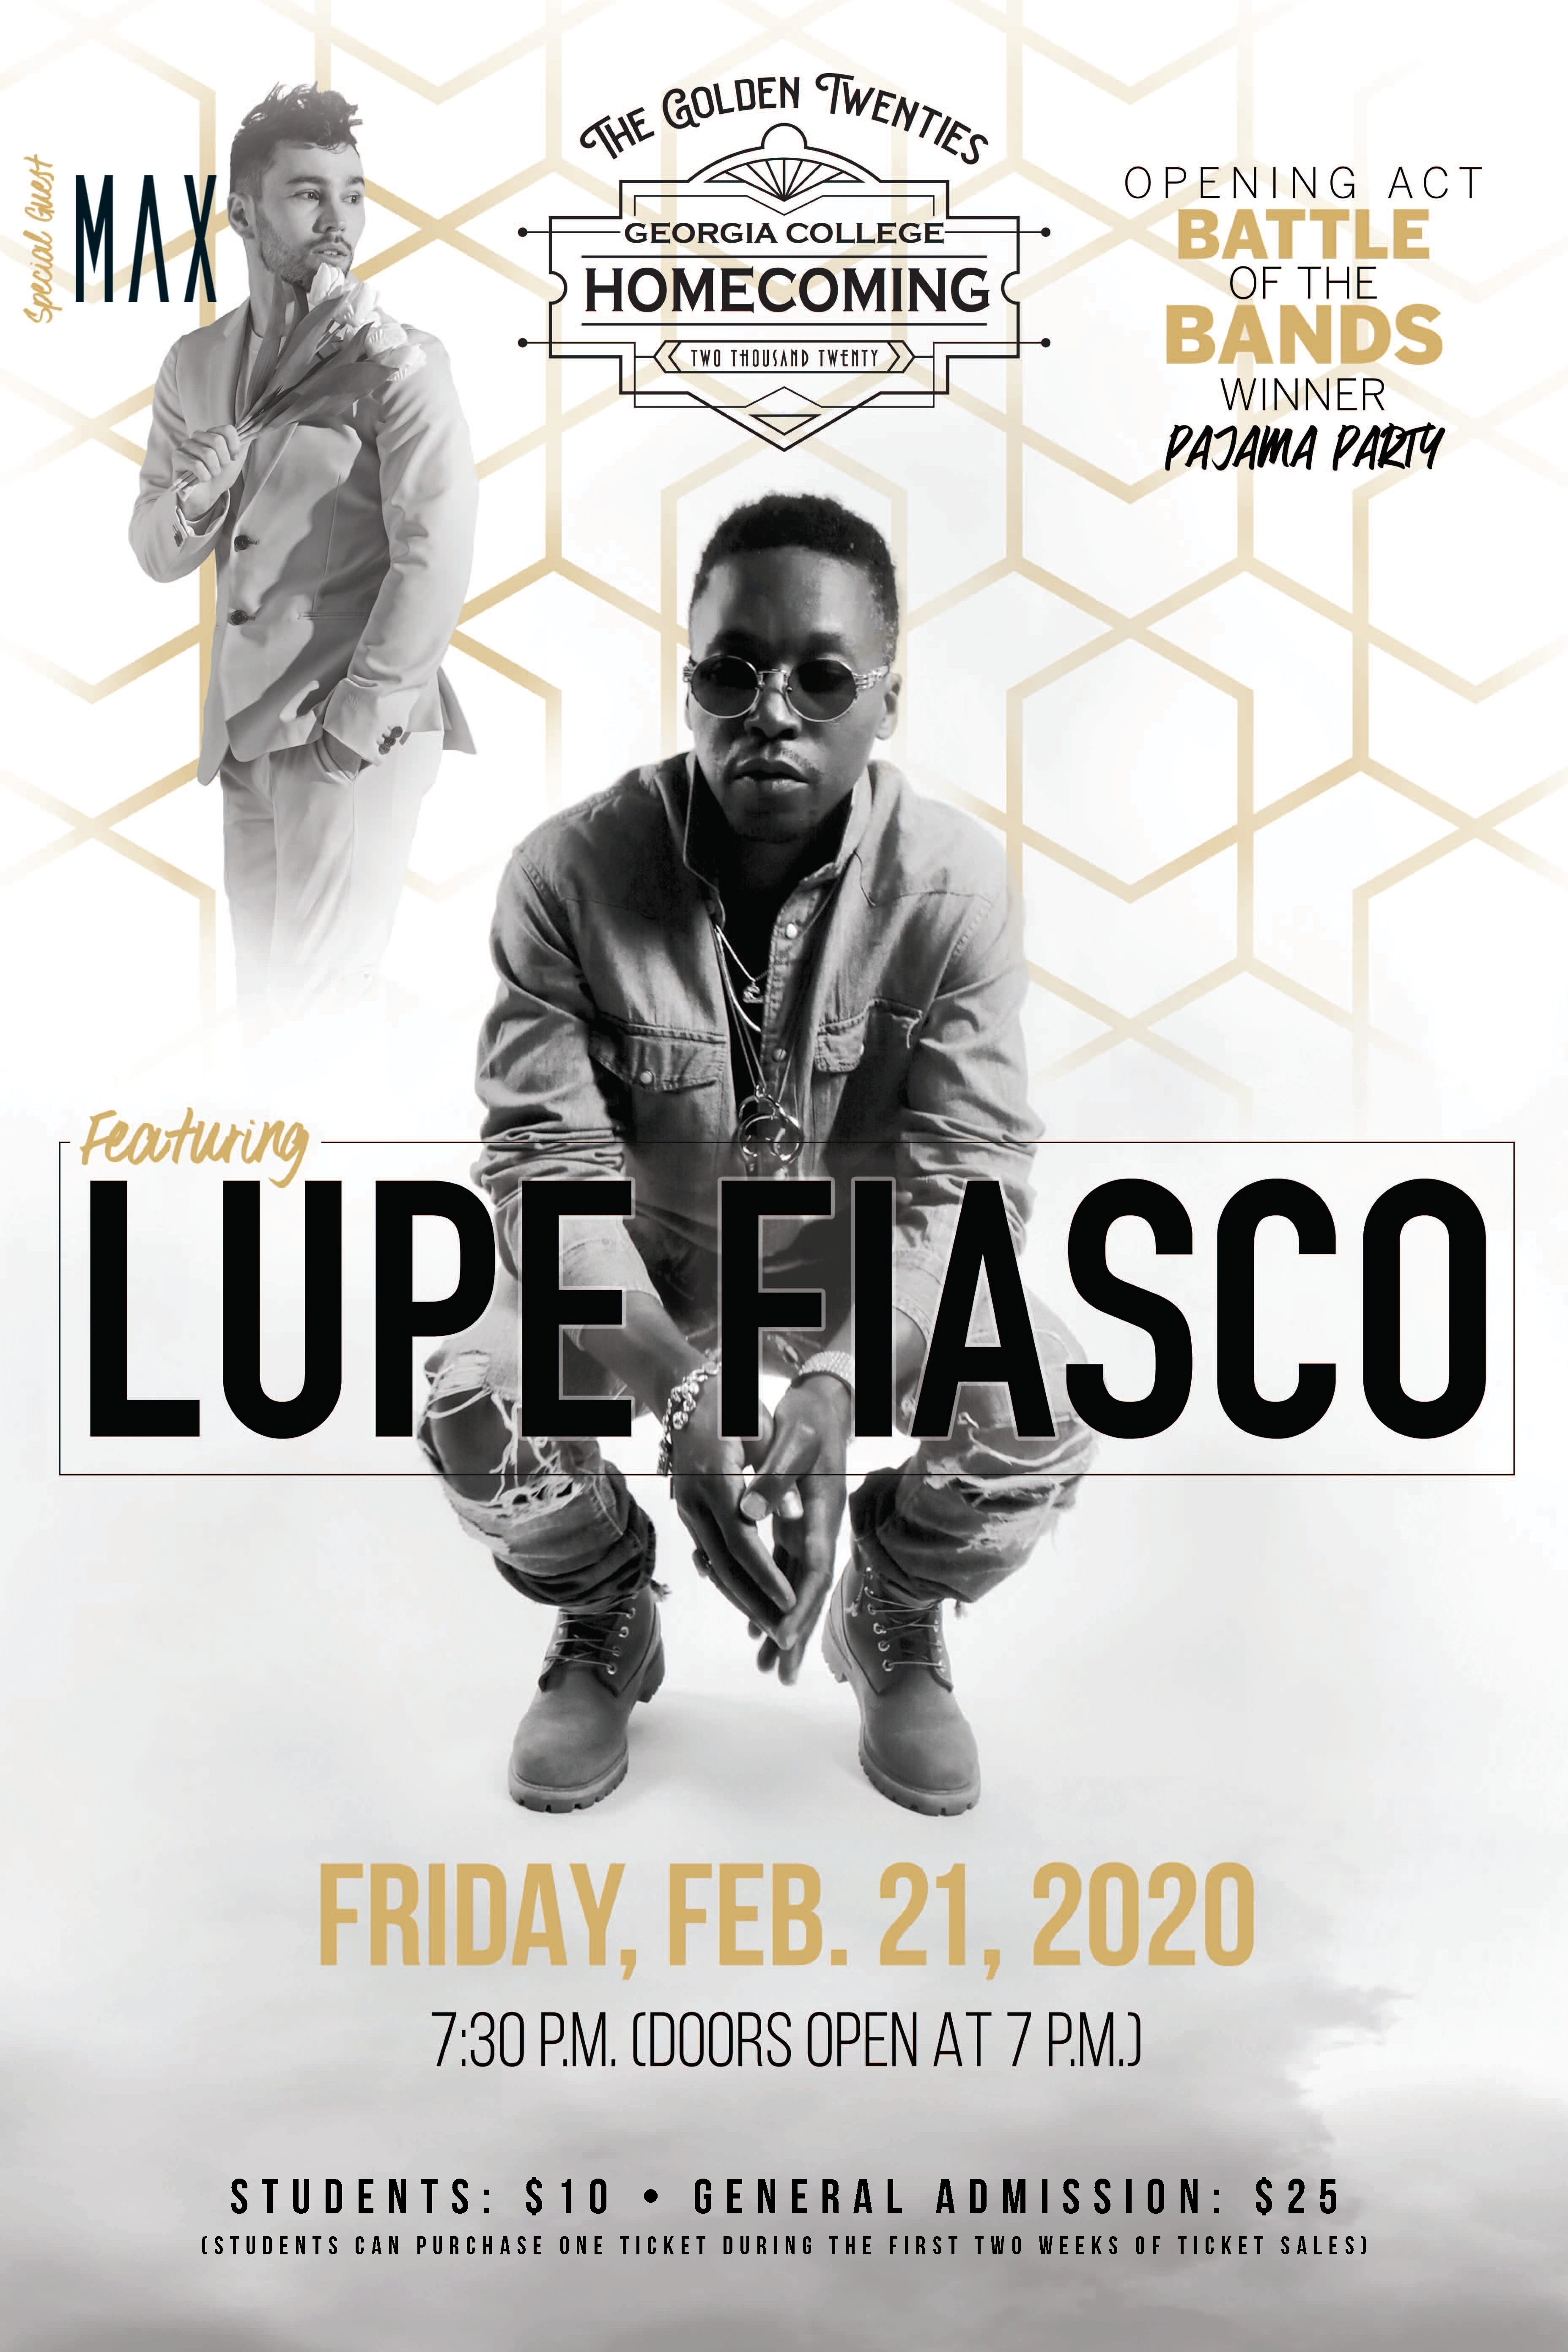 Acts for Homecoming 2020, Lupe Fiasco, Max, Pajama Party